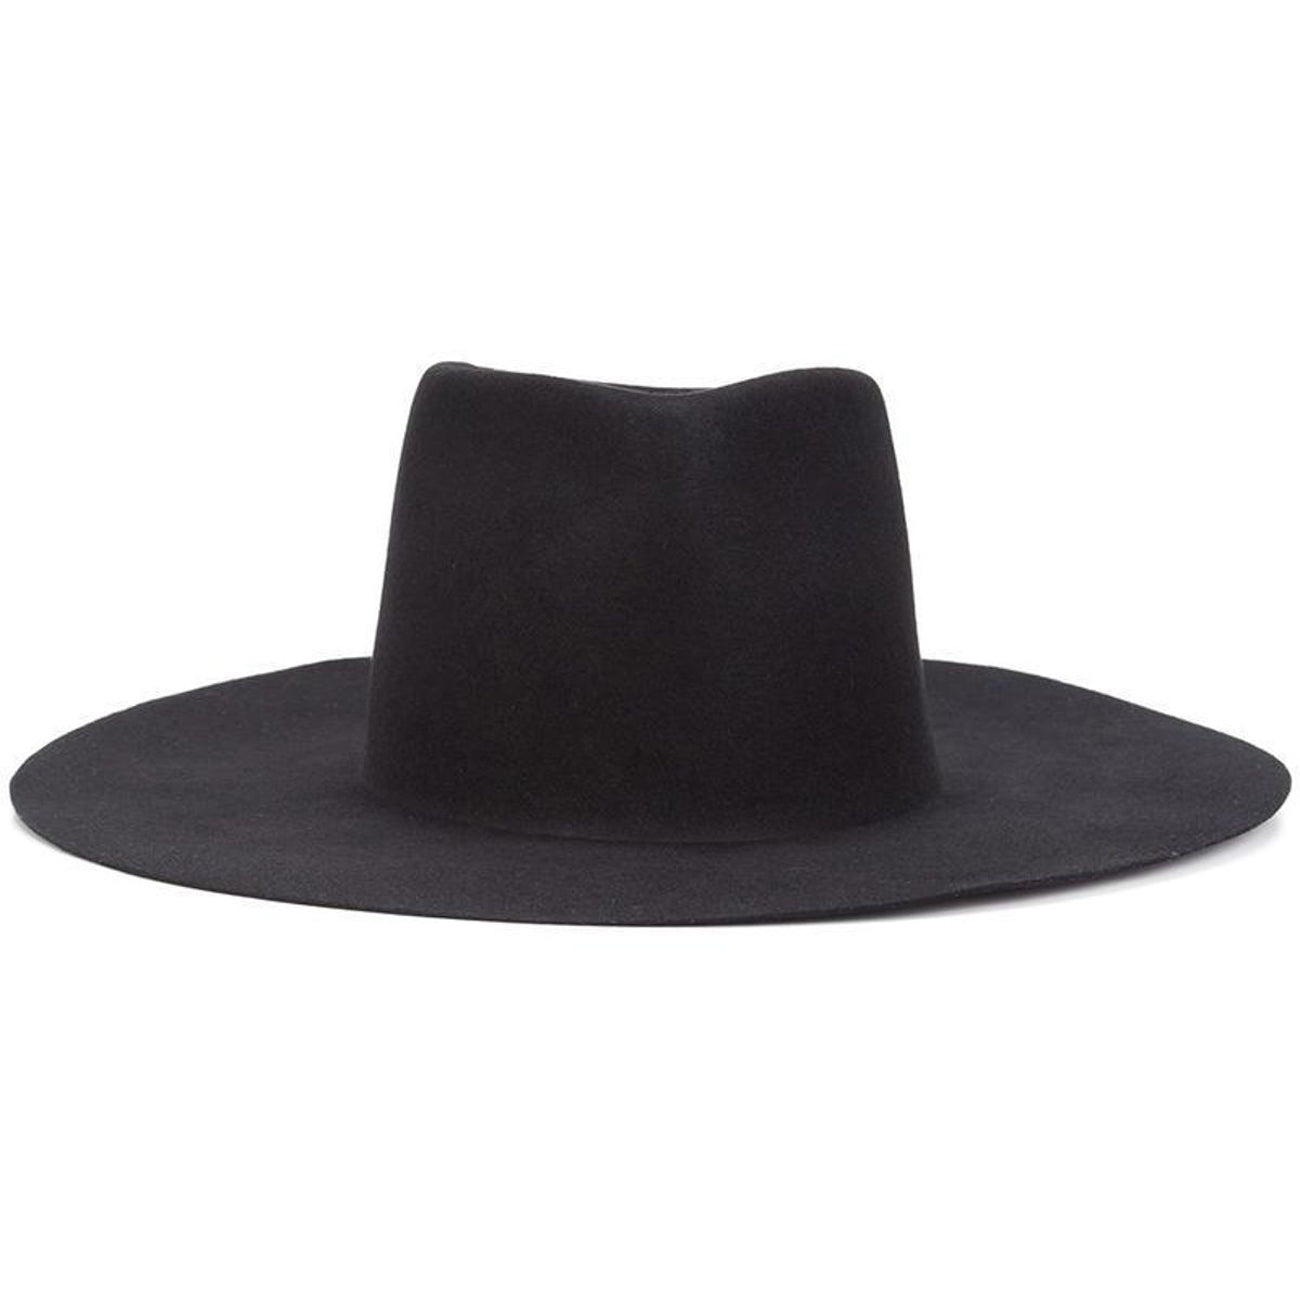 Reinhard Plank Nana Hat in Black